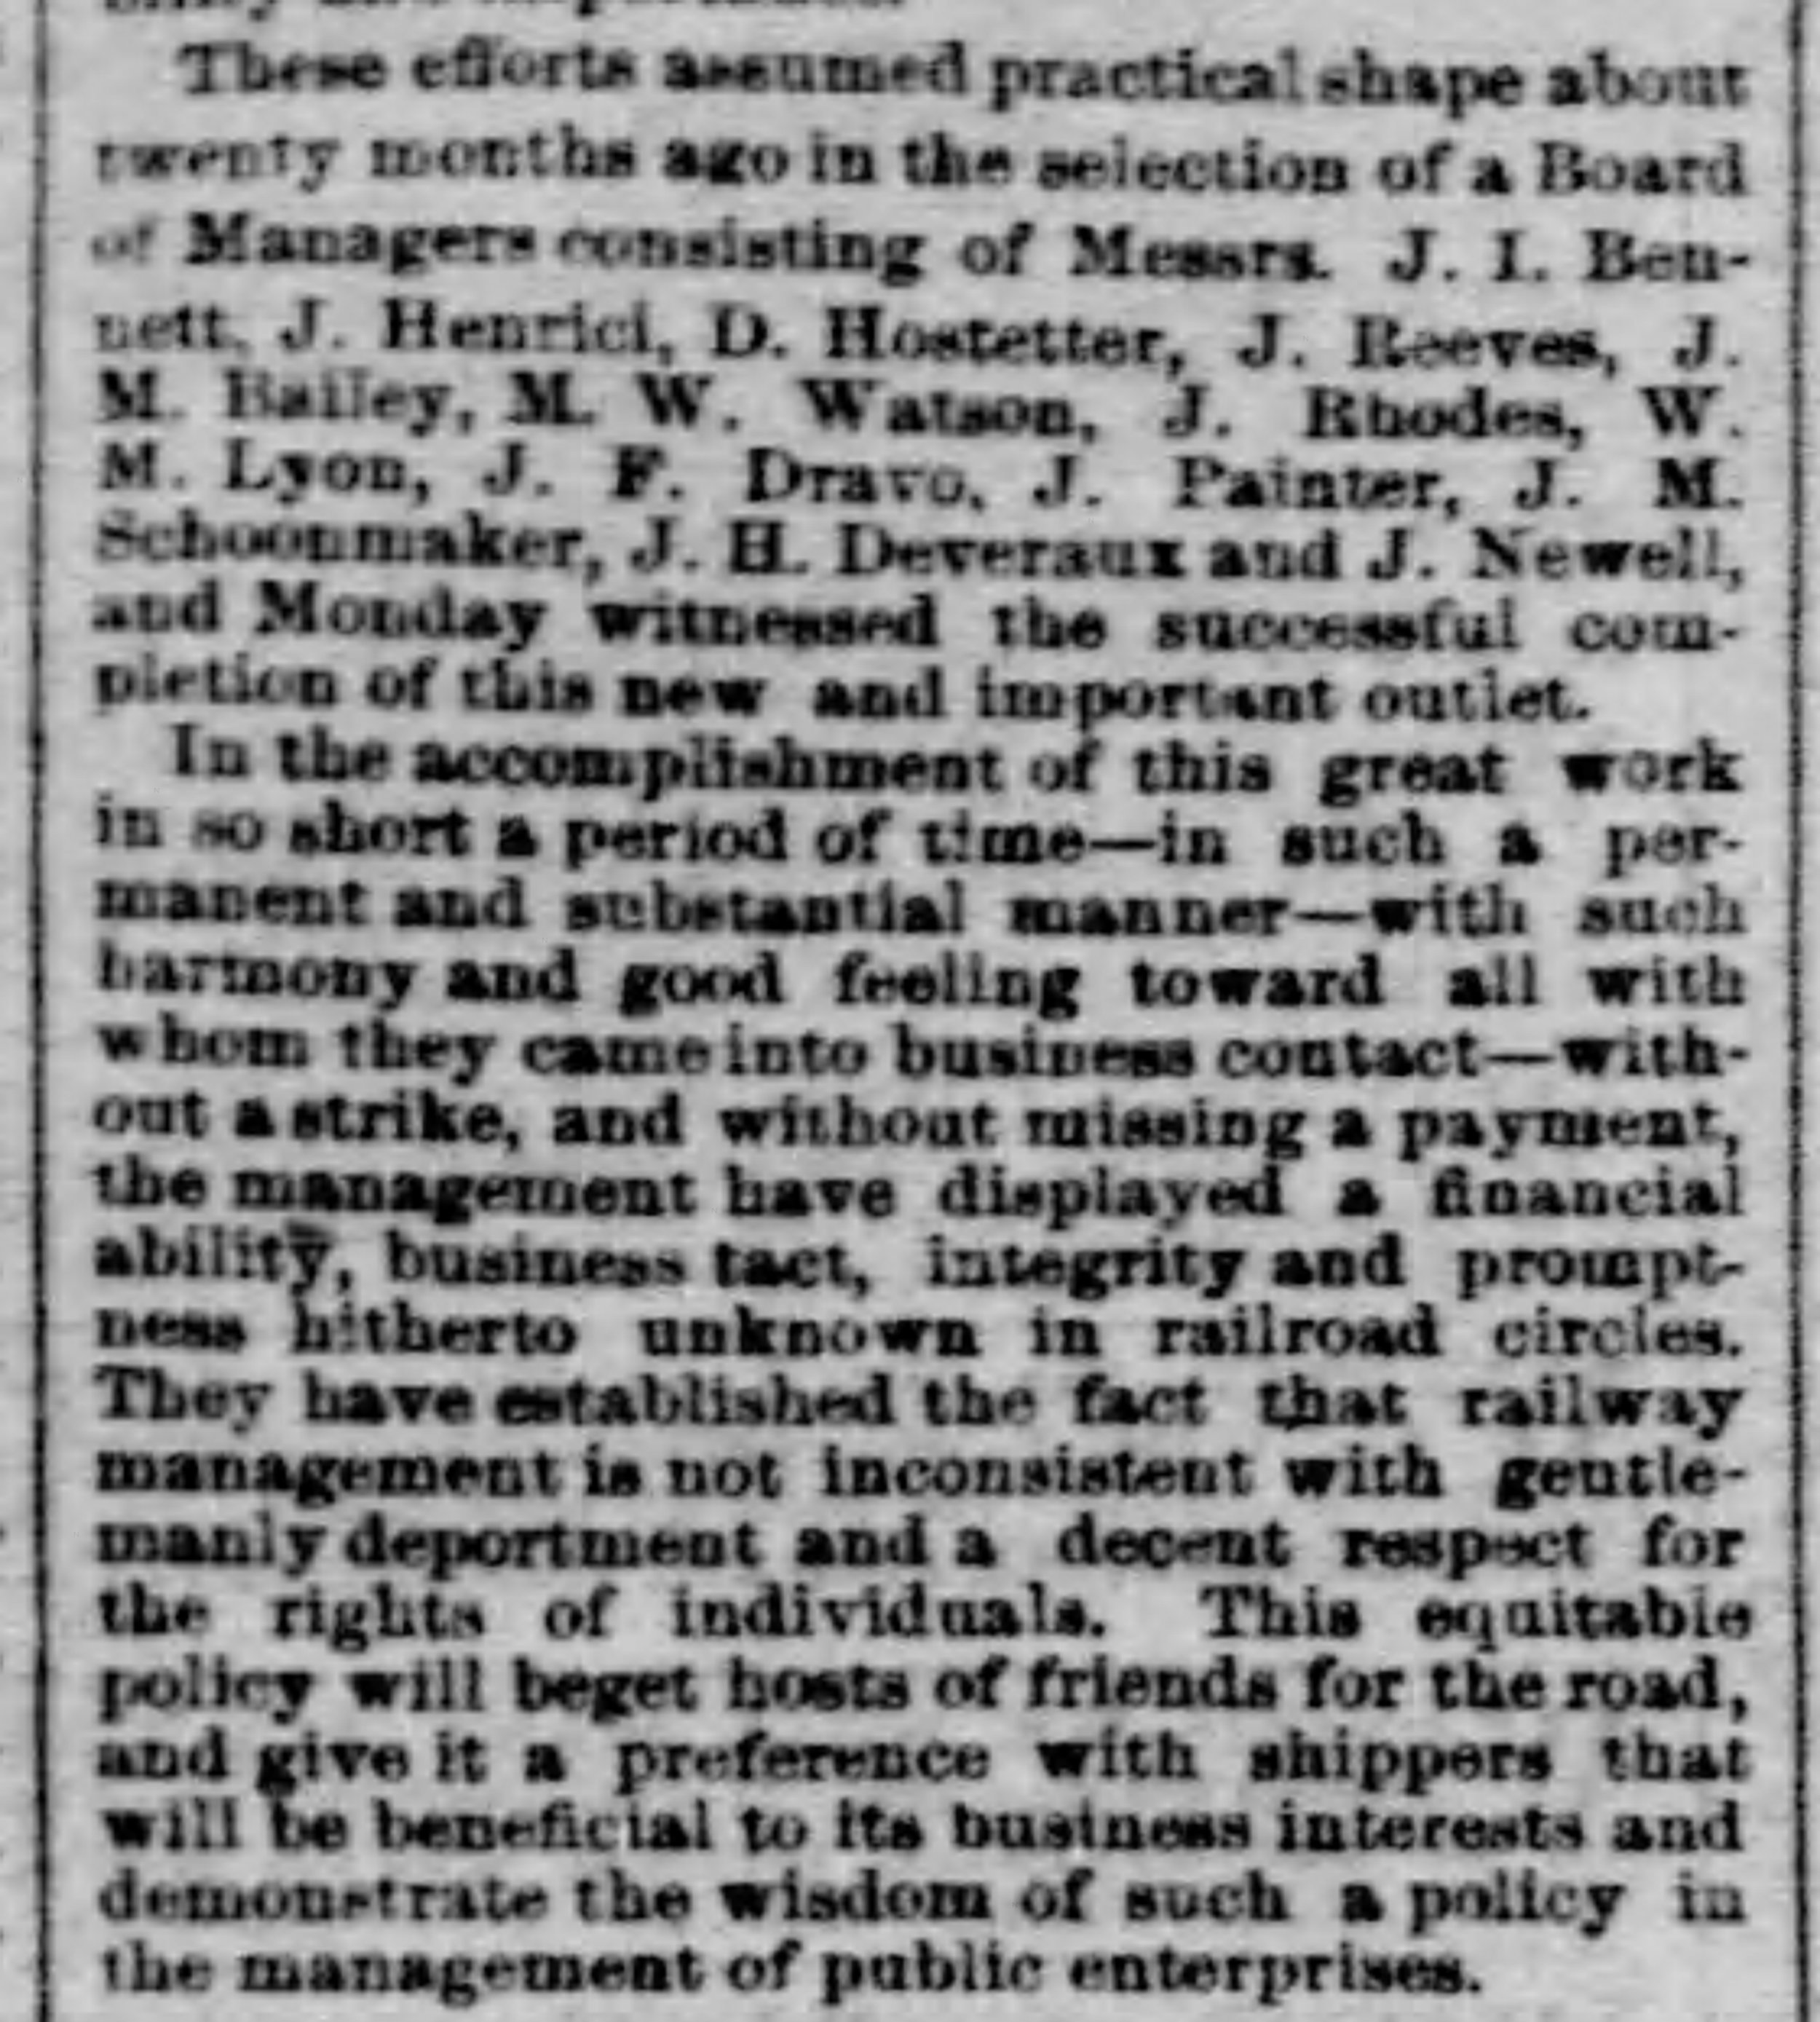 Our New Outlet - Pittsburgh_Post_Gazette_Wed__Feb_26__1879(b).jpg